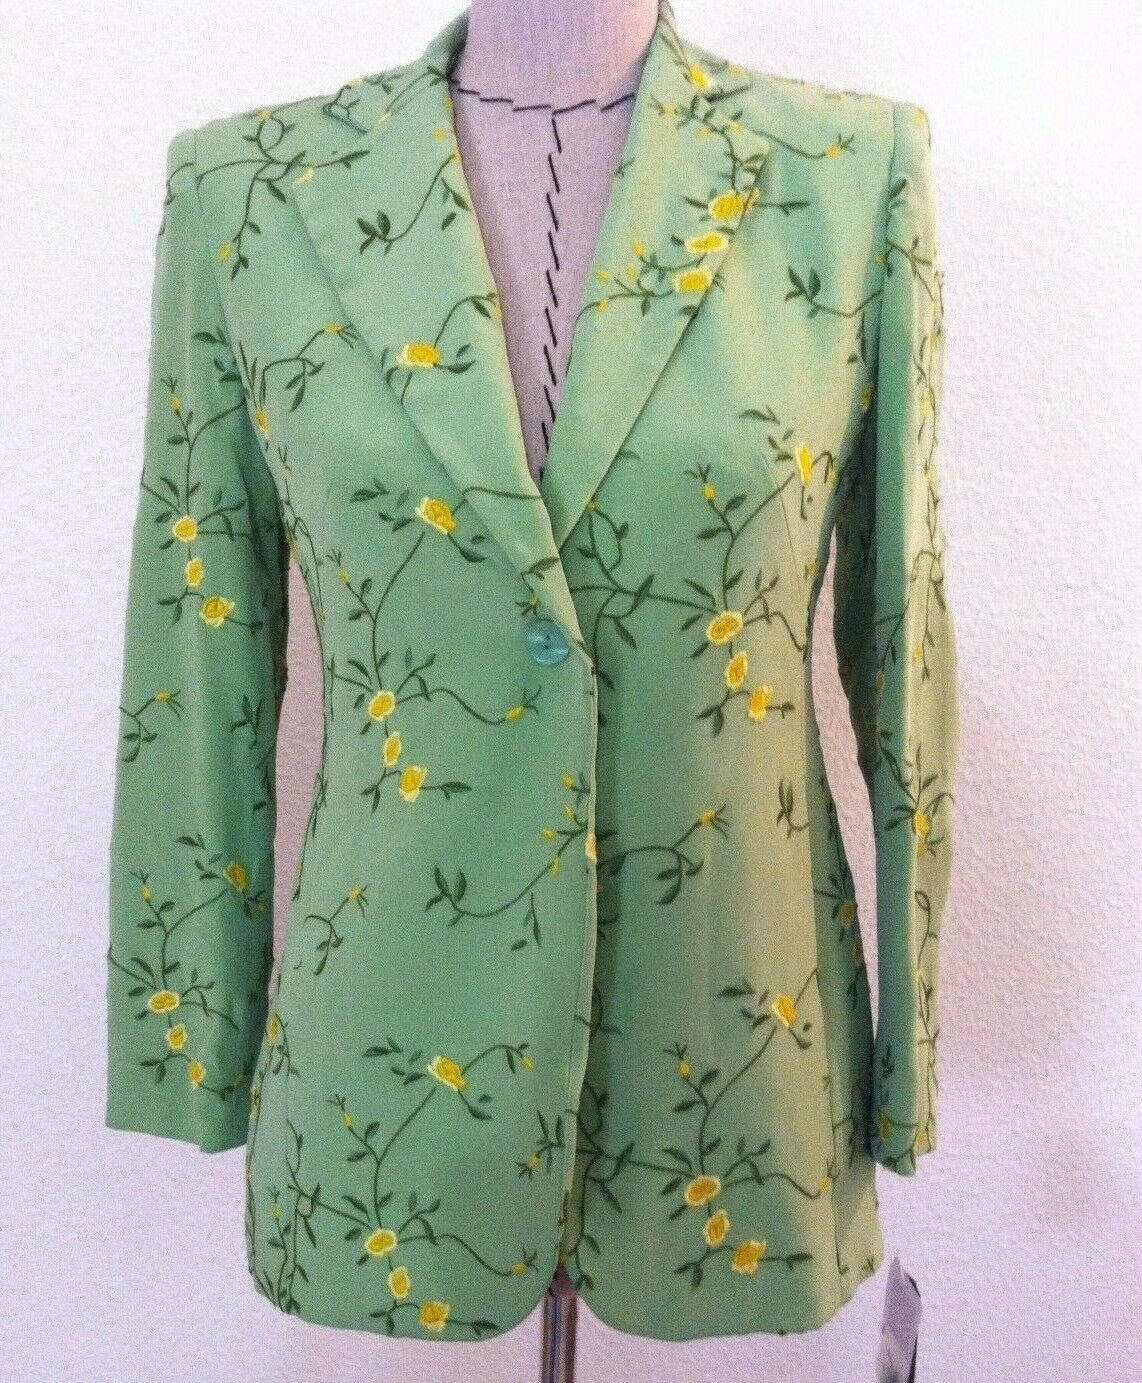 New Rena Rowan woman blazer 100% silk green yellow floral embroid size 2P petite